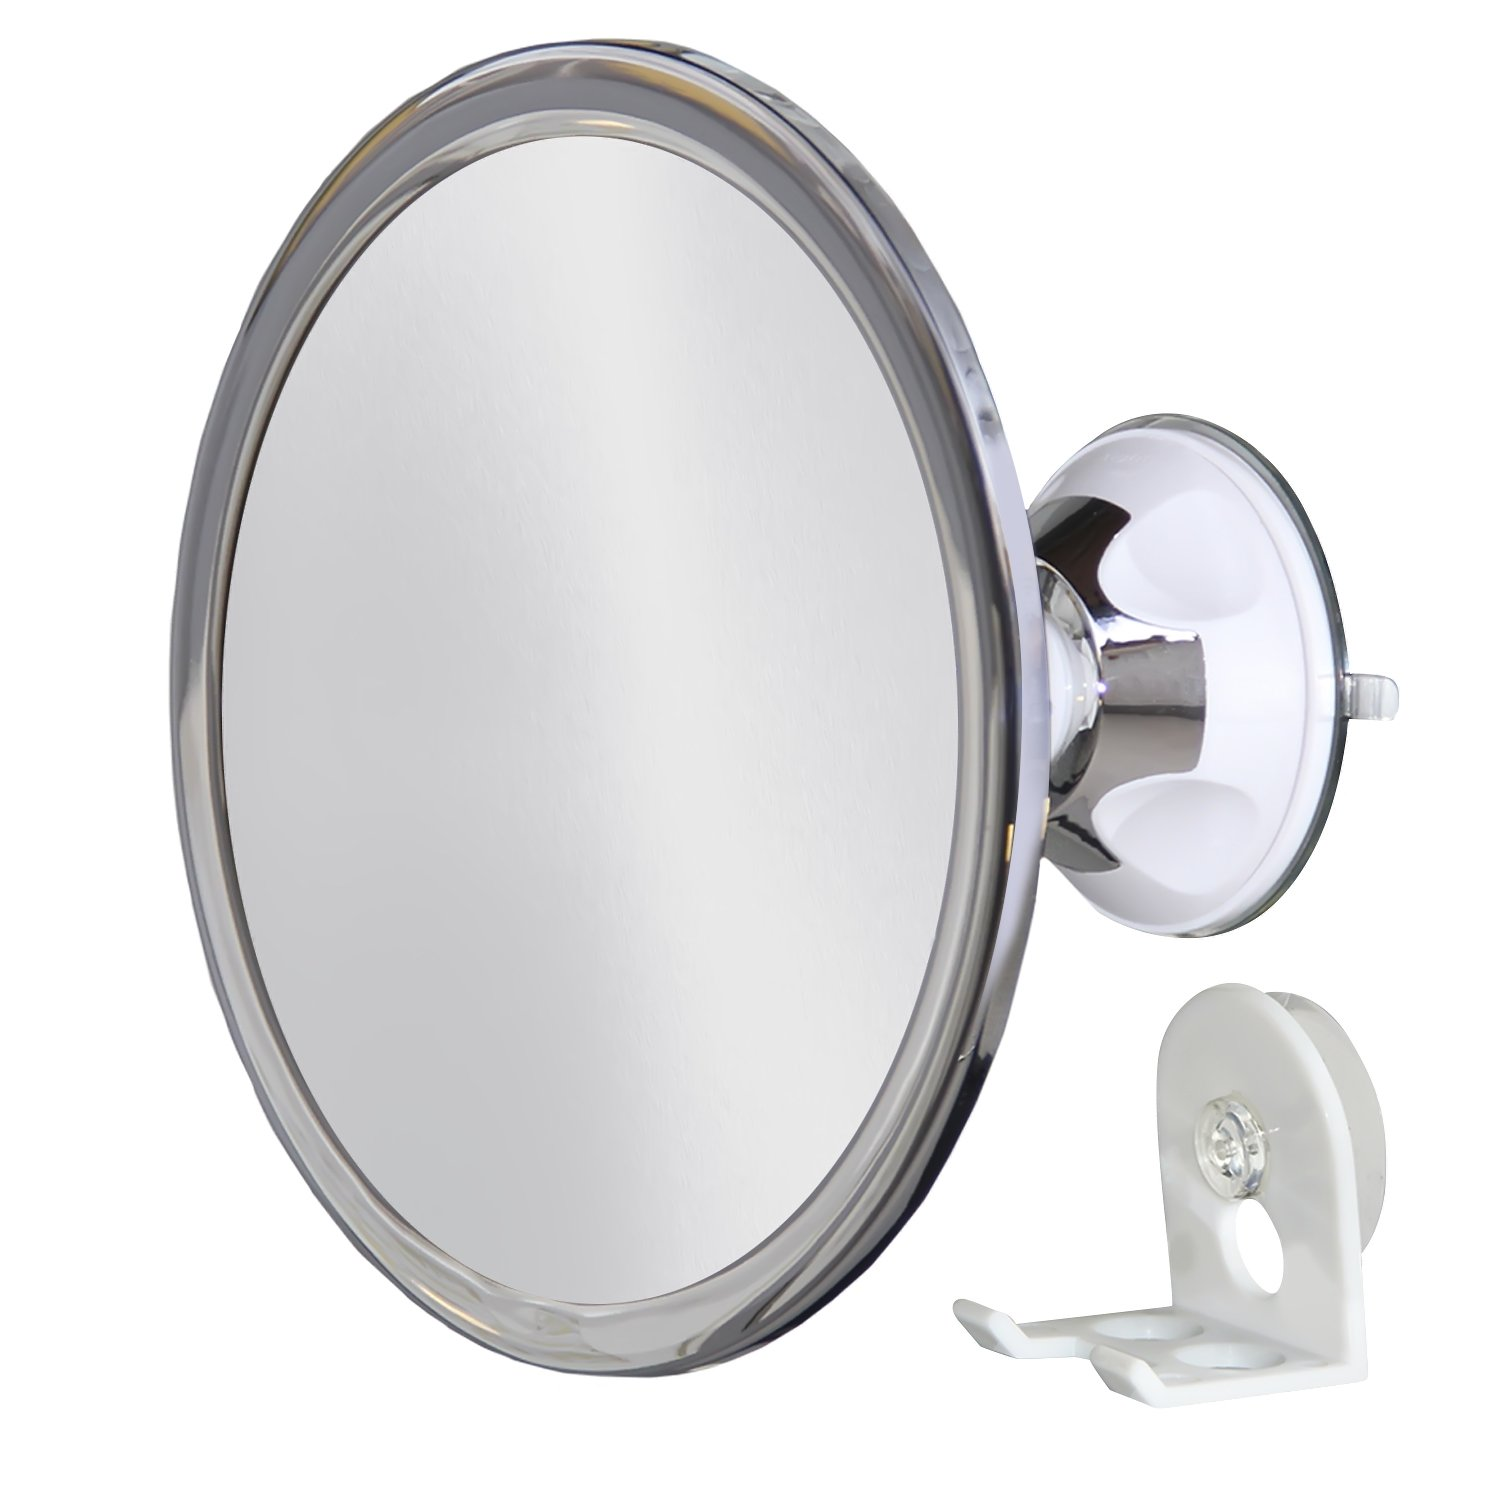 Upper West Collection No Fog Shower Mirror with Rotating, Locking Suction; Bonus Separate Razor Holder | Adjustable Arm for Easy Positioning | Best Personal Mirror for Shaving Available | The by Upper West Collection